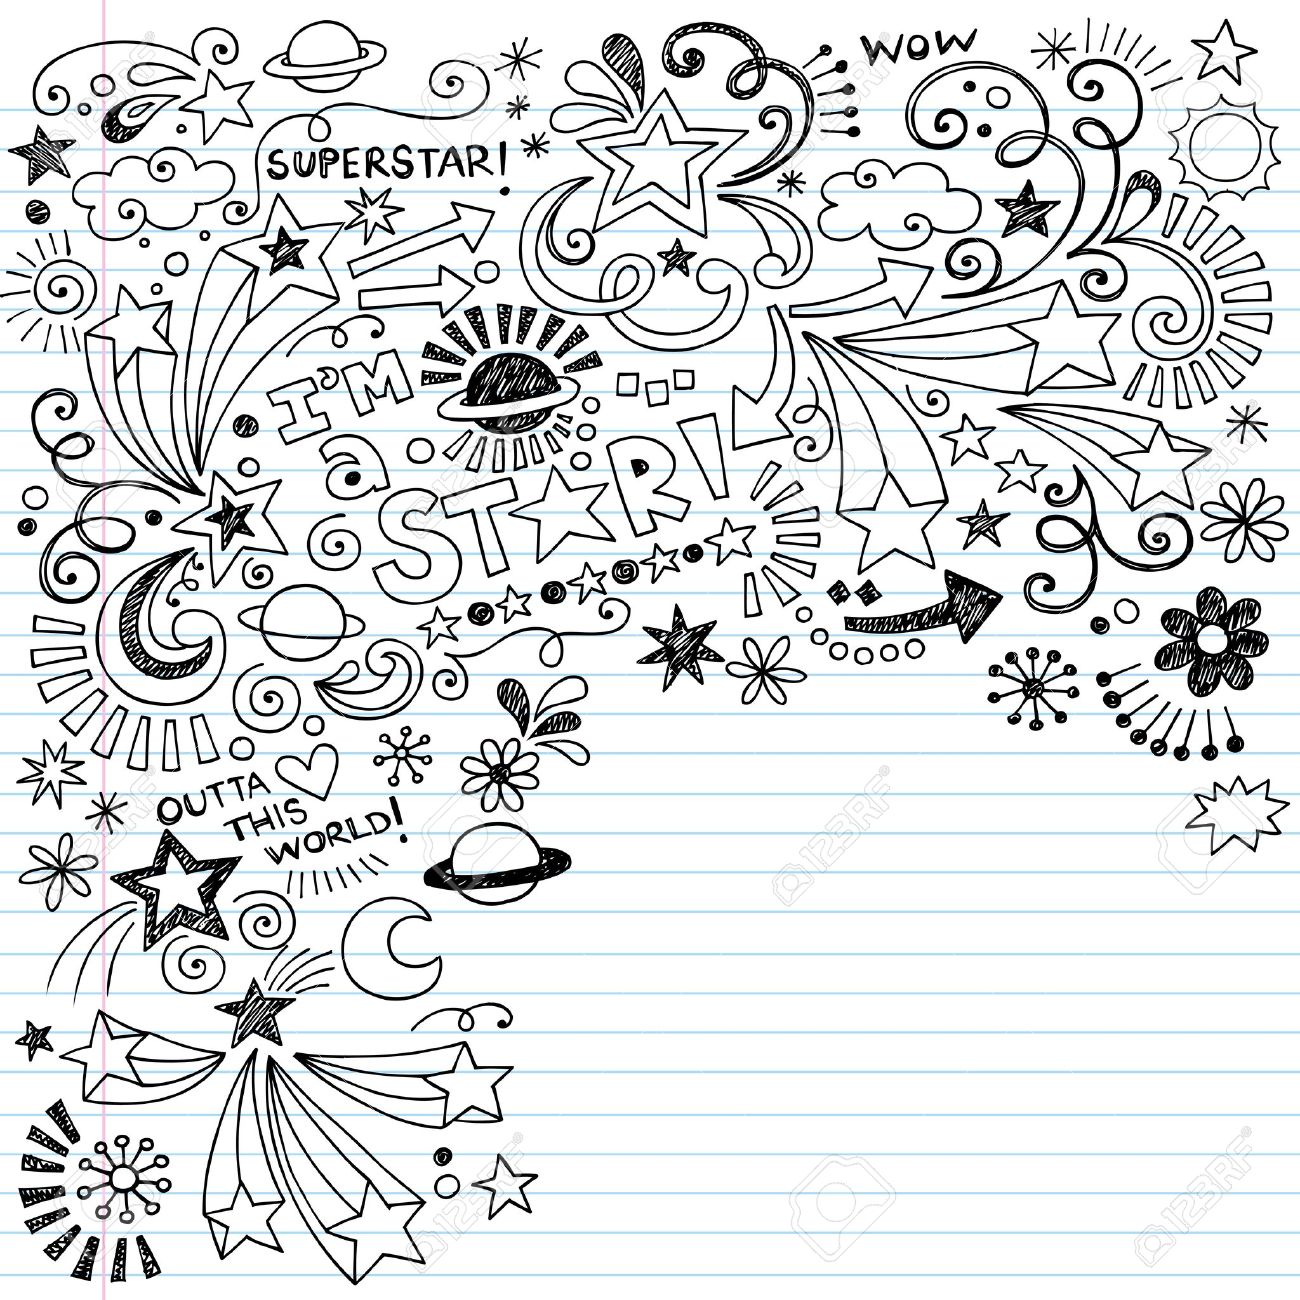 Doc452567 Lined Paper with Drawing Box Write and Draw Lined – Lined Paper with Drawing Box